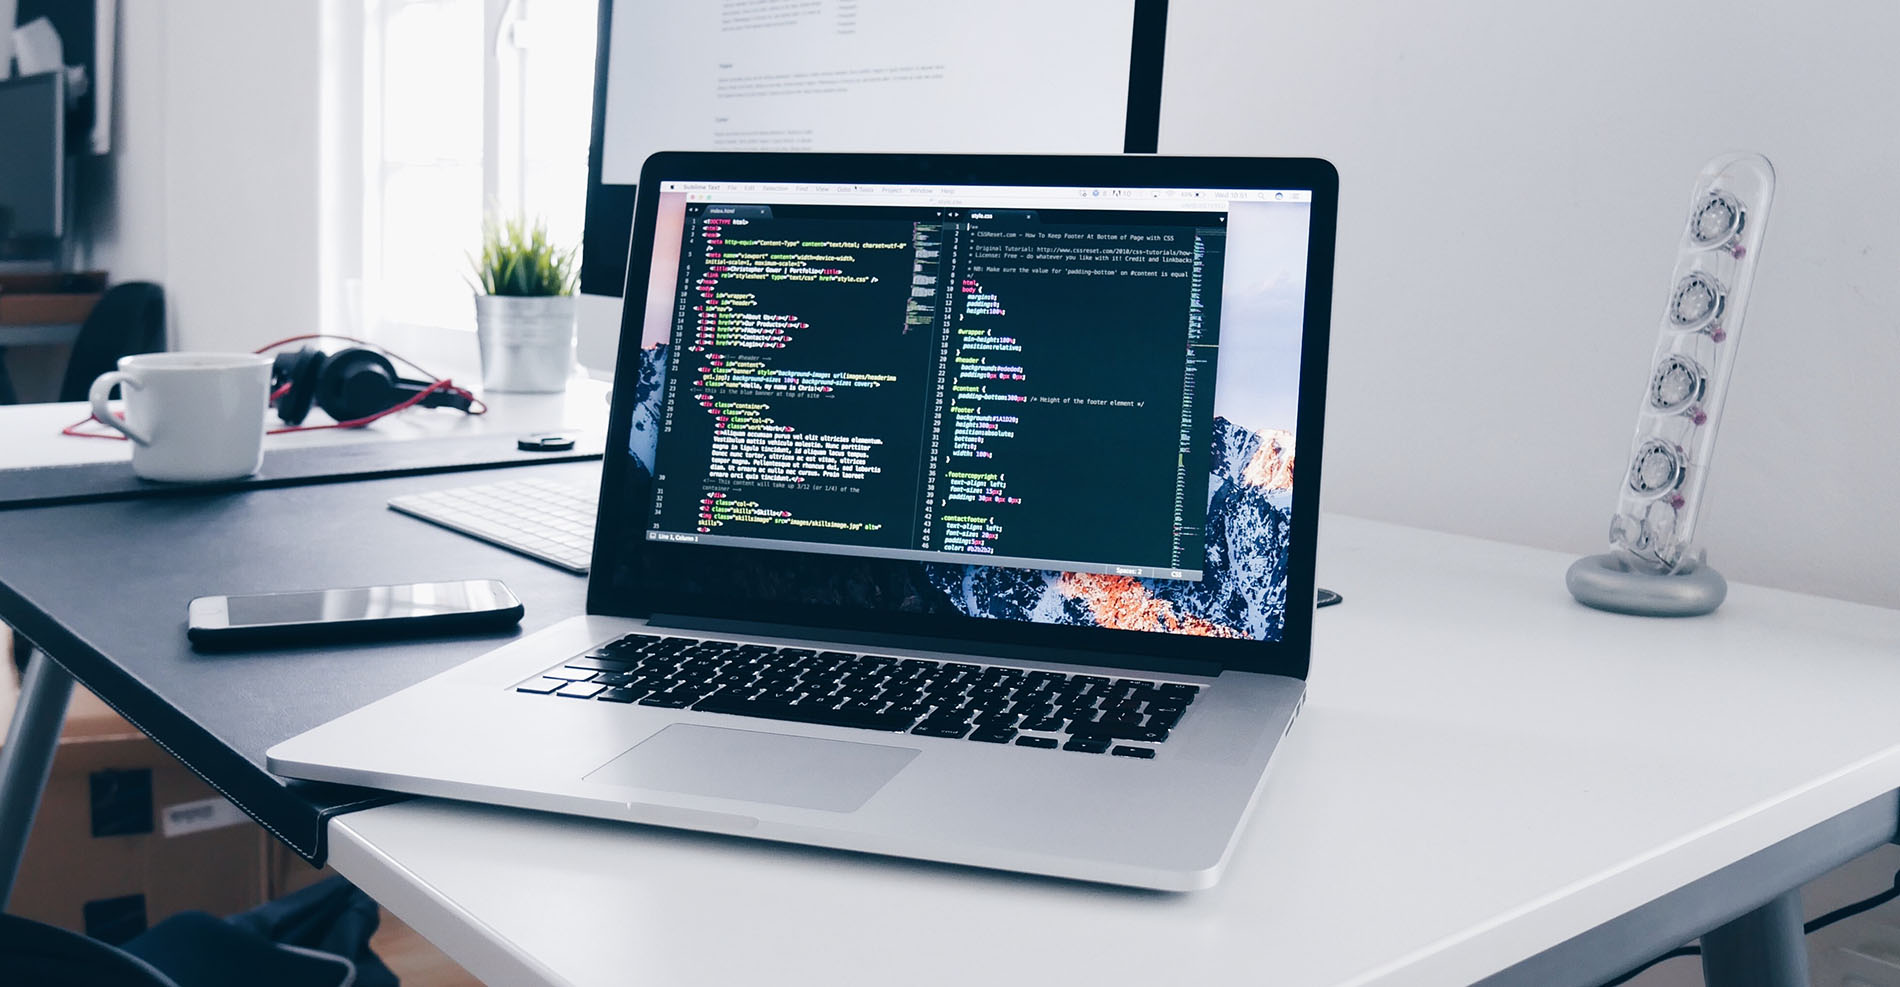 3 Steps to Get Started as a Web Developer